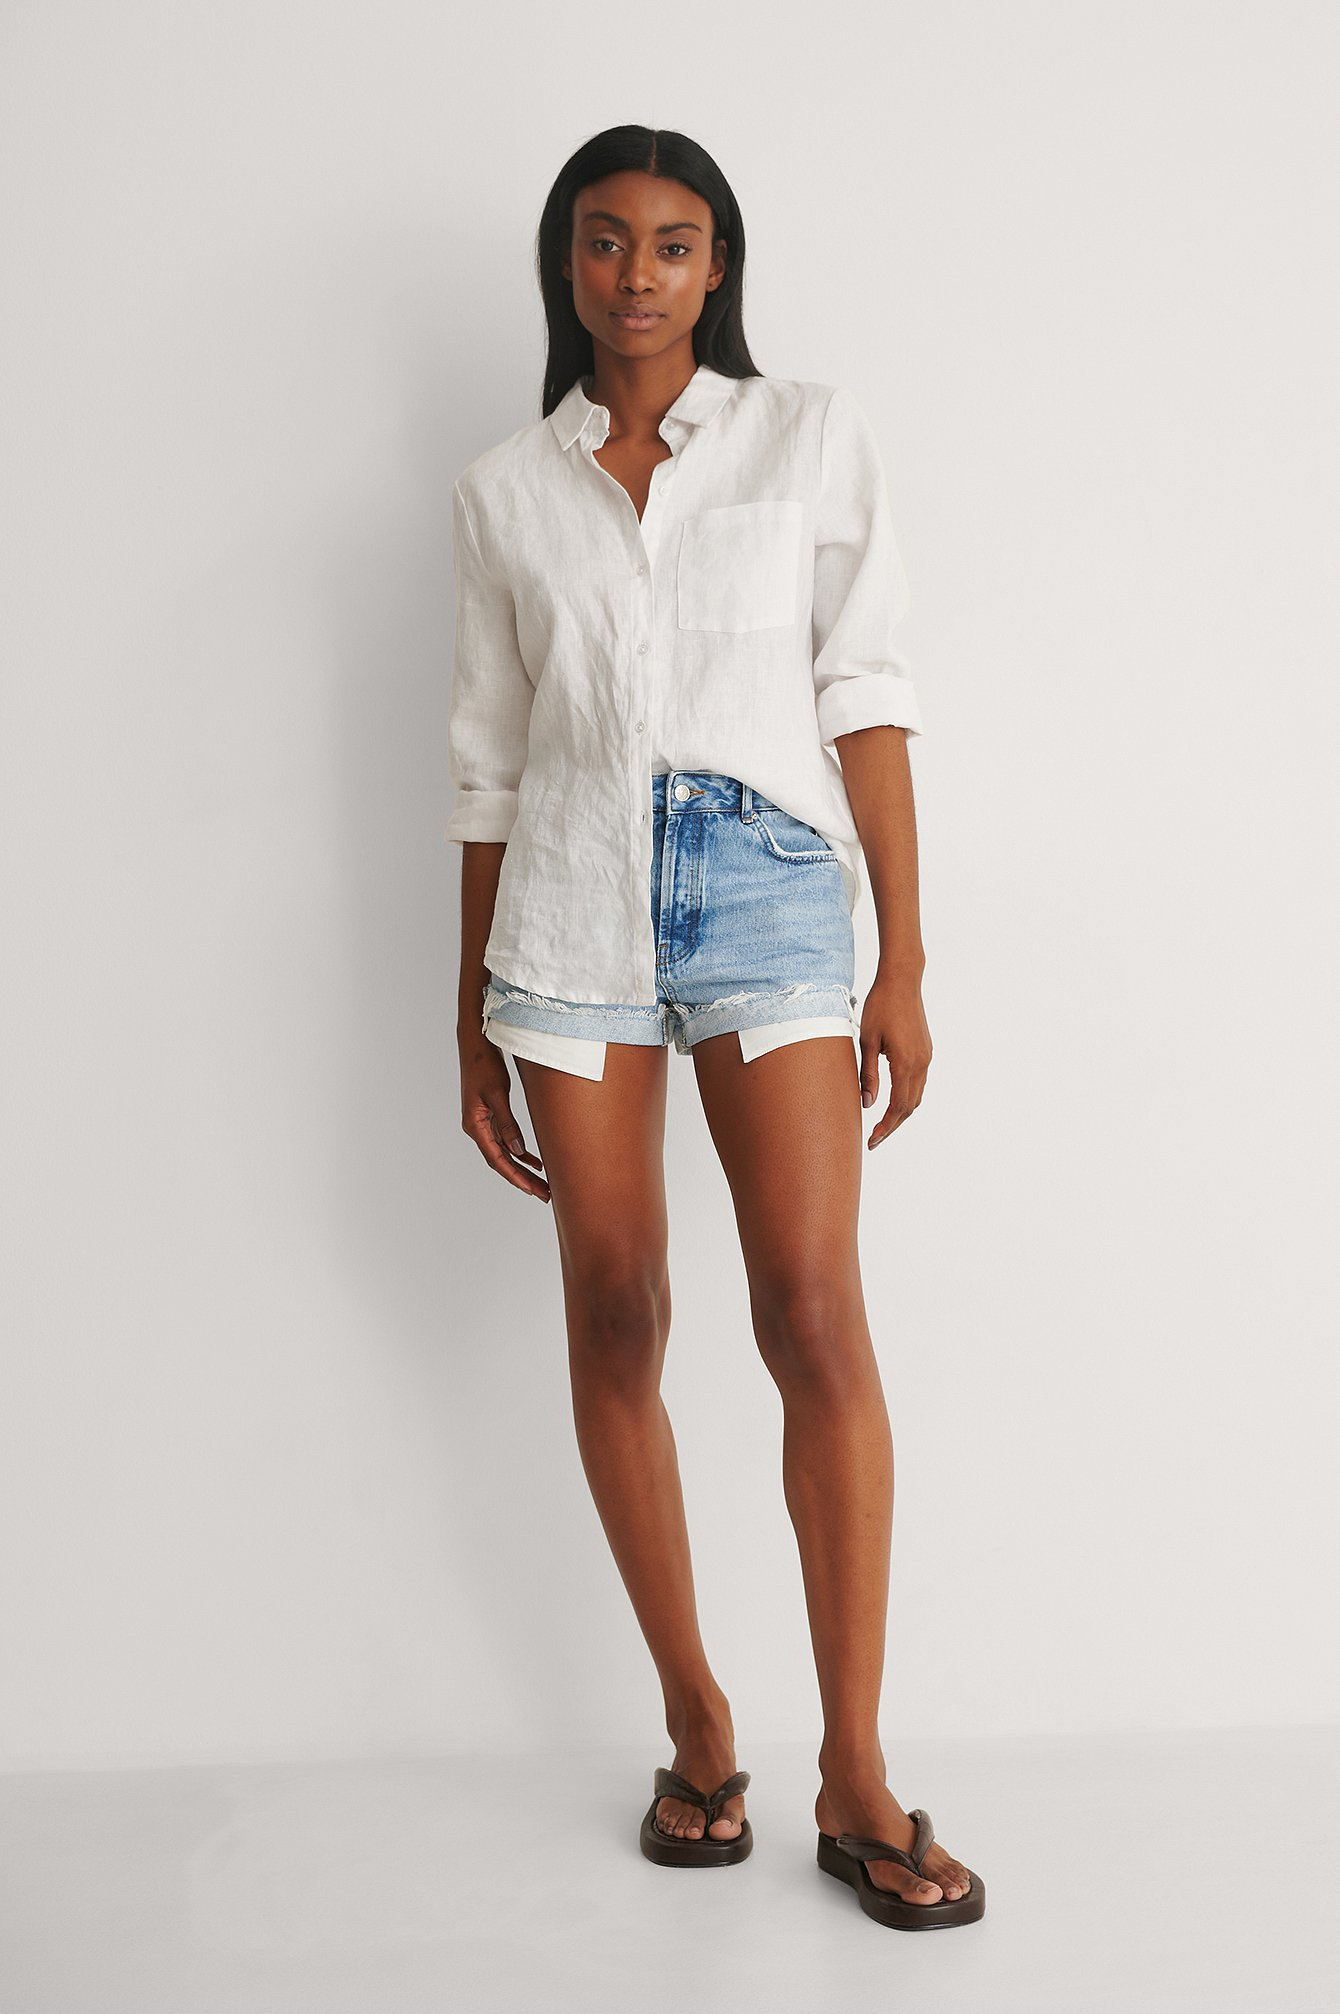 Vintage Look Fold Up Denim Shorts Out Outfit.